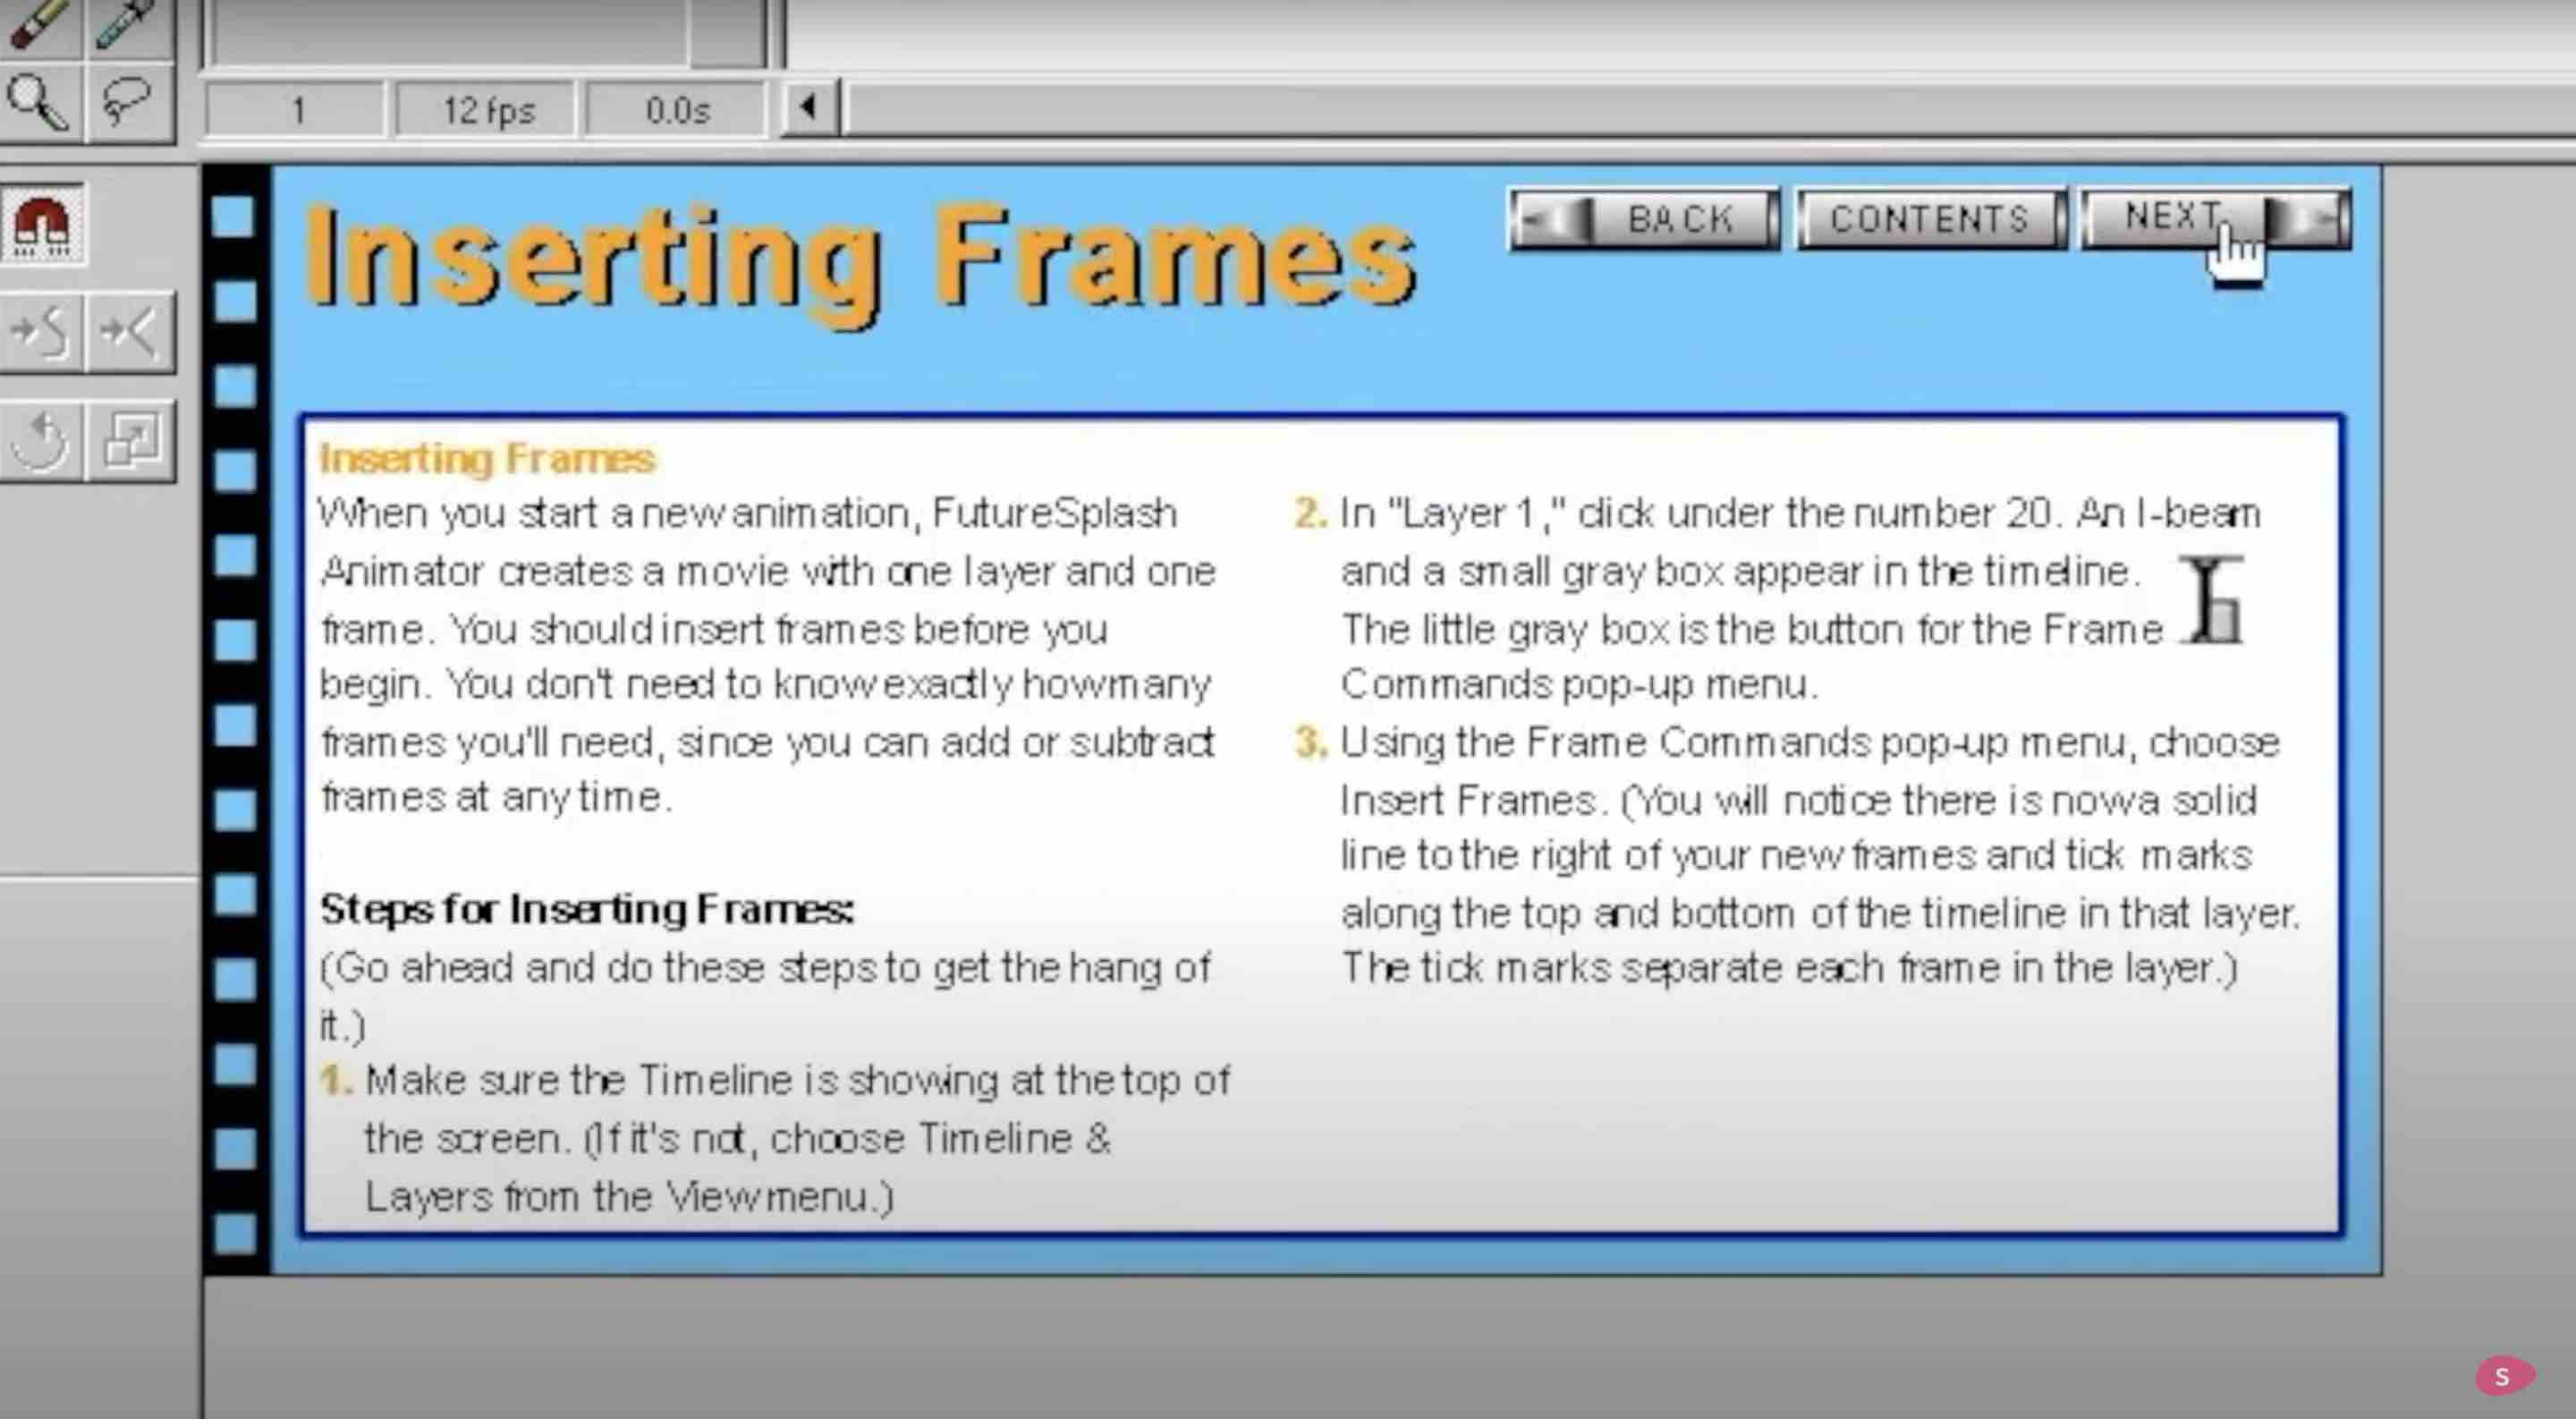 Did Apple Kill Flash? This image shows the basic instructions for inserting frames in the first Flash versions